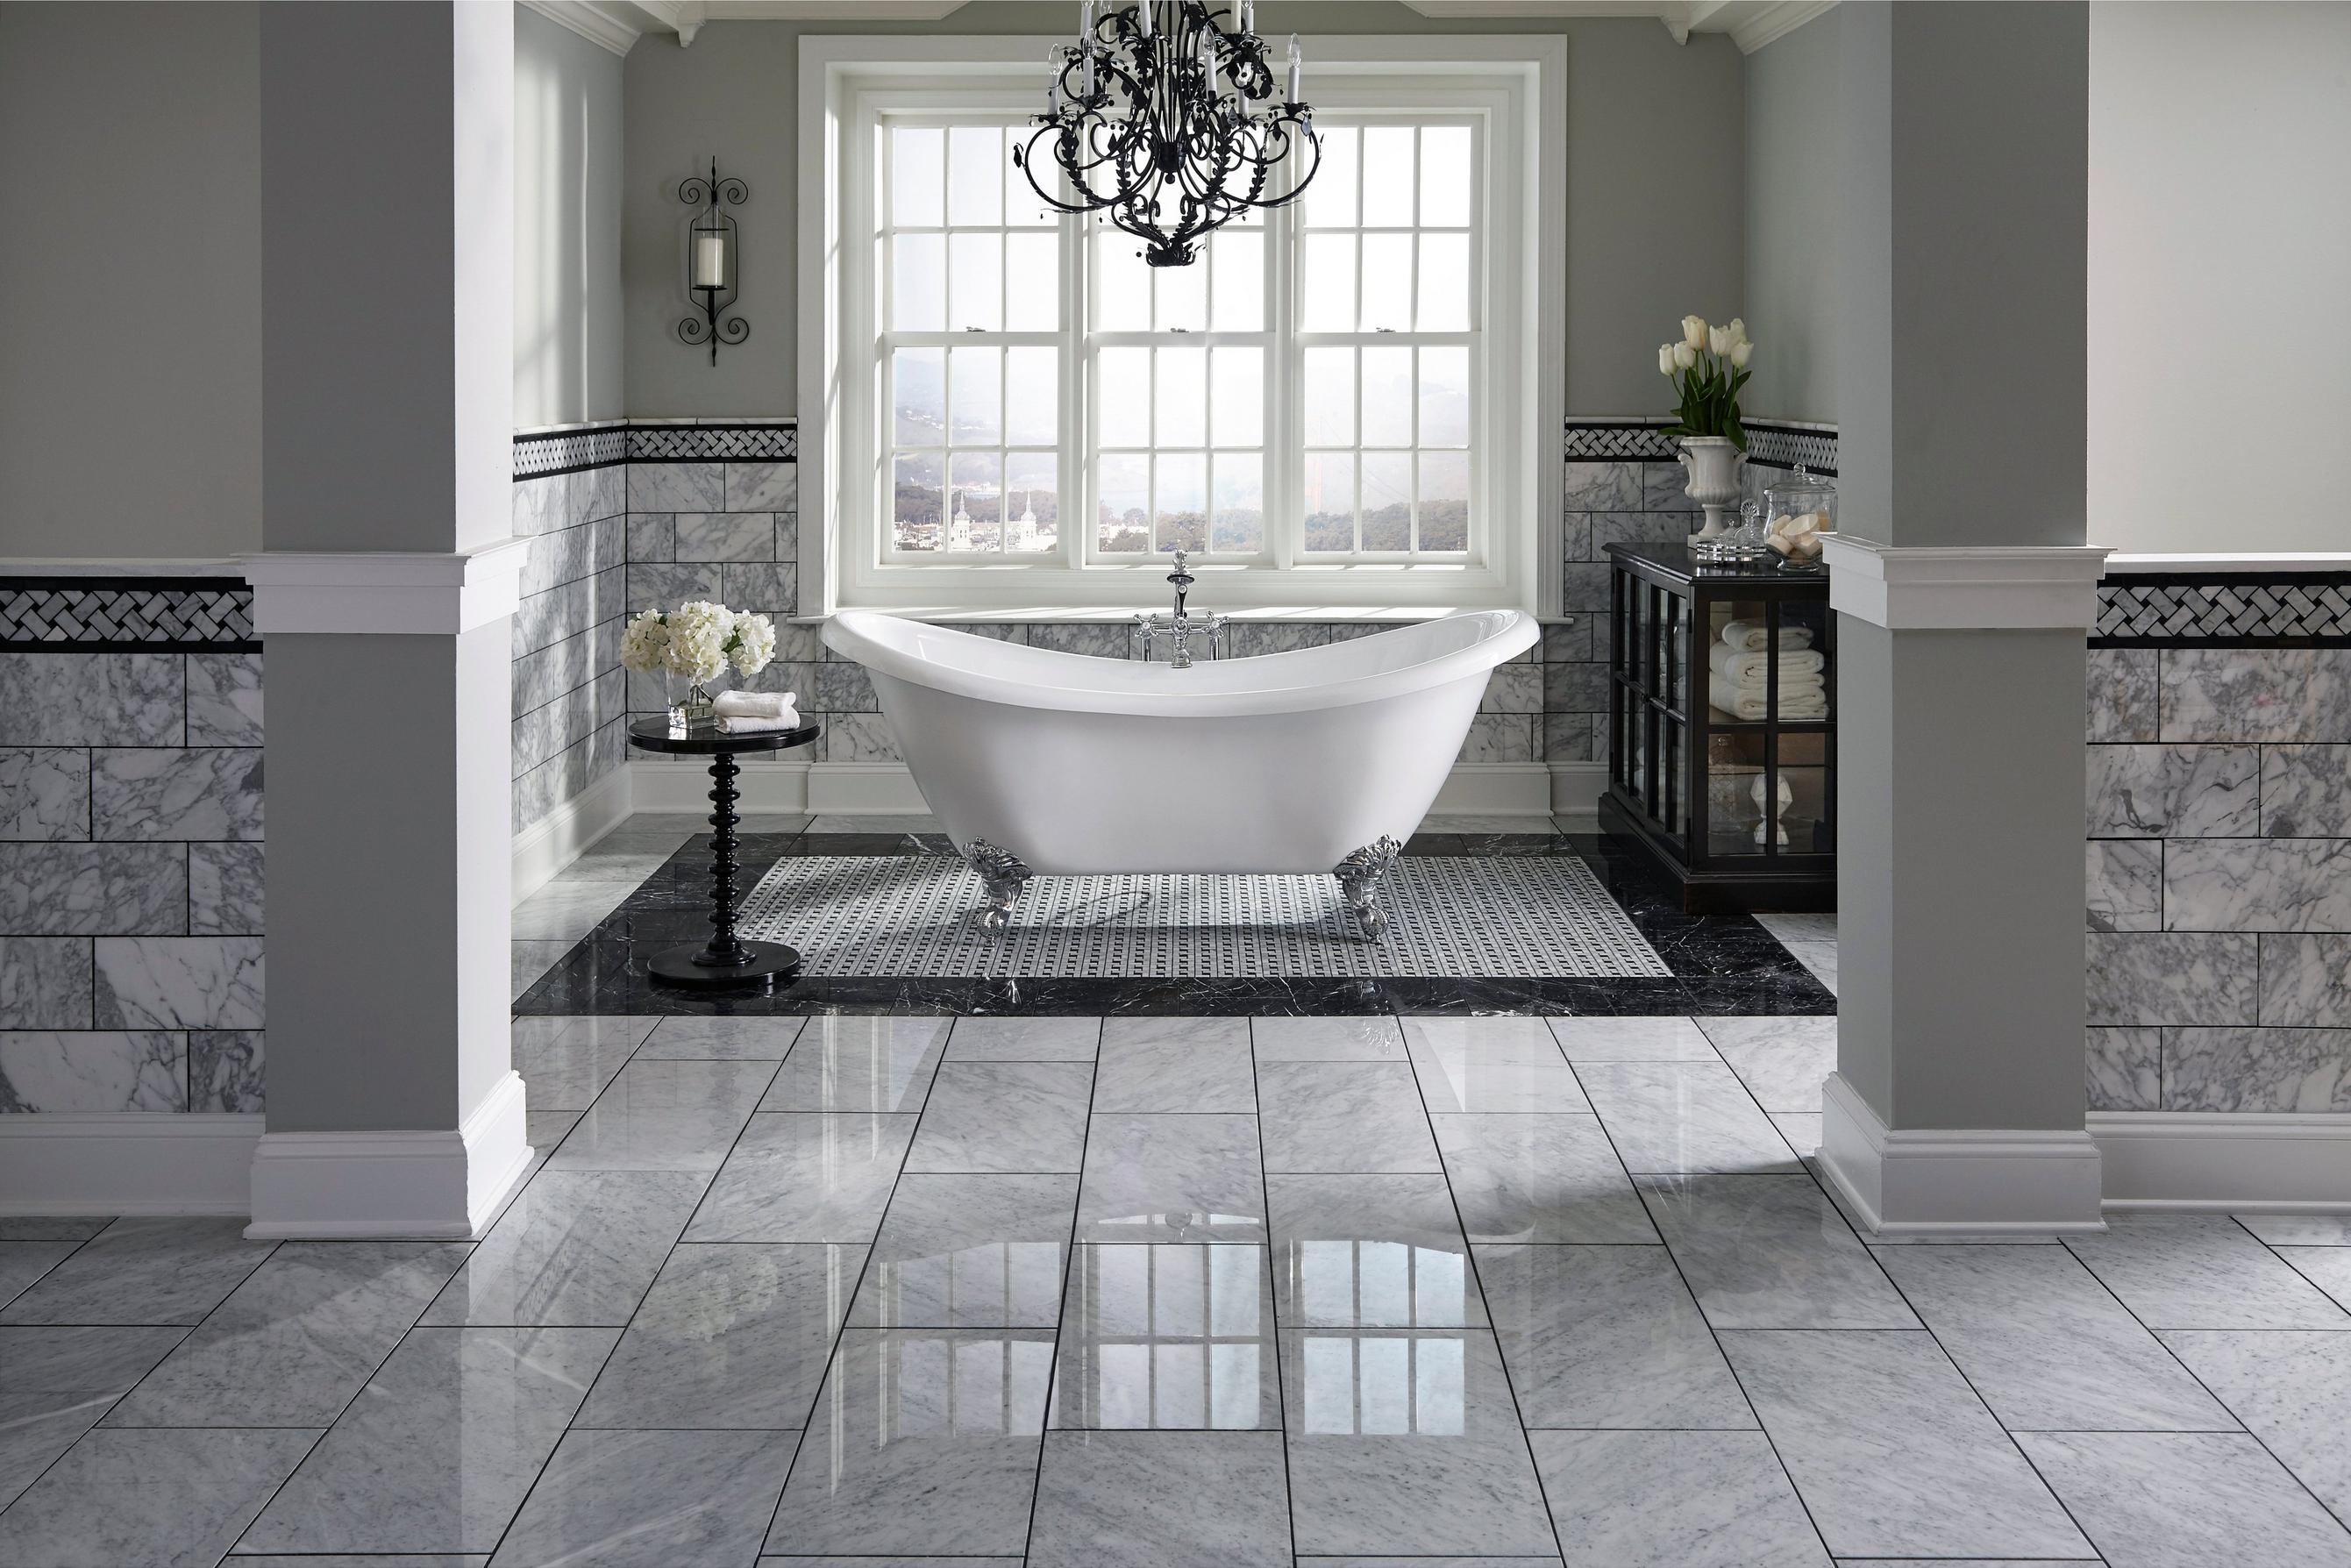 Bathroom gallery floor decor view details dailygadgetfo Choice Image